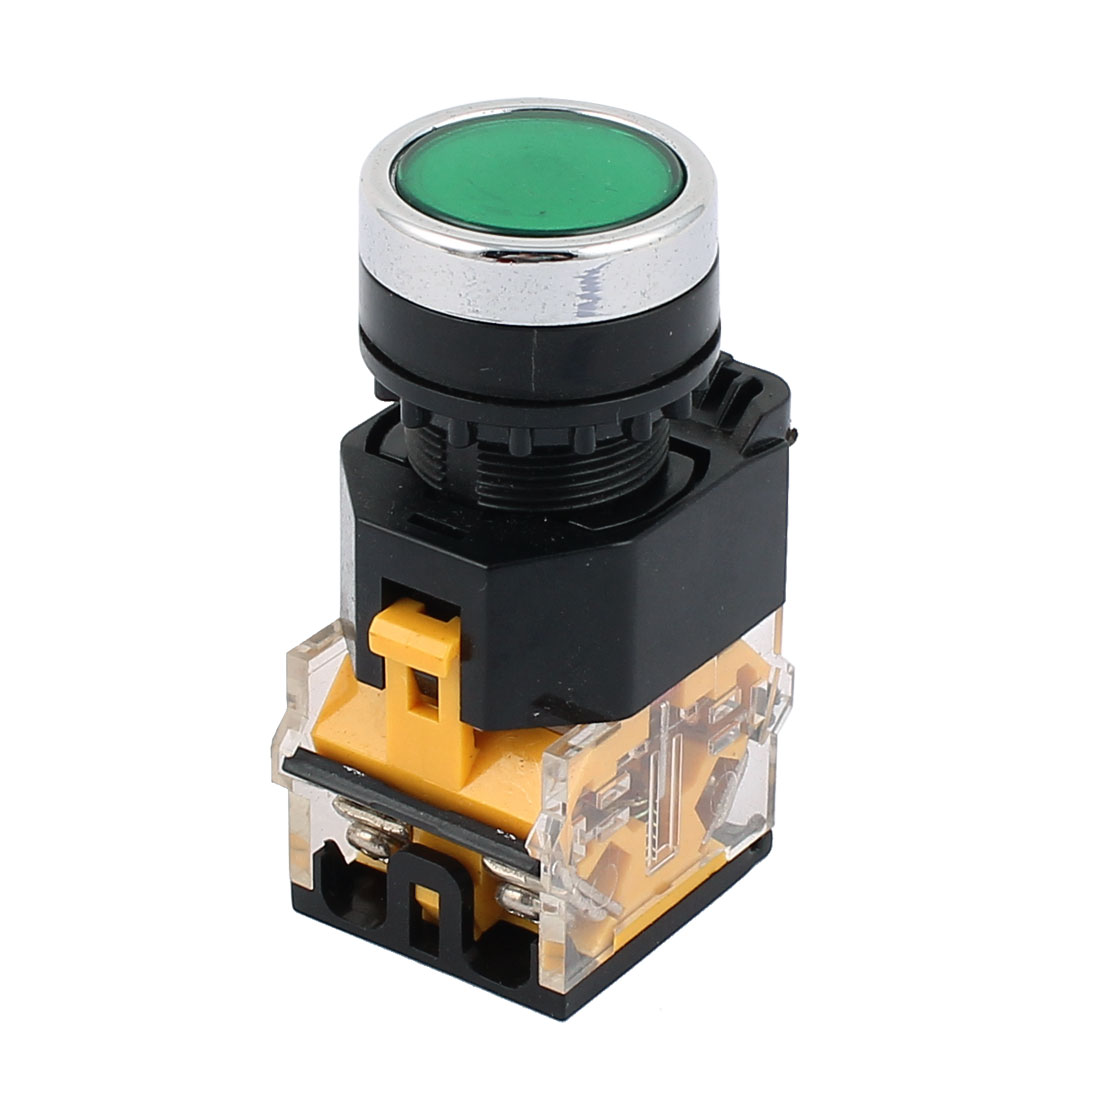 AC 660V 10A 4 Terminals 22mm Thread Dia DPST NO/NC Momentary Green Push Button Switch